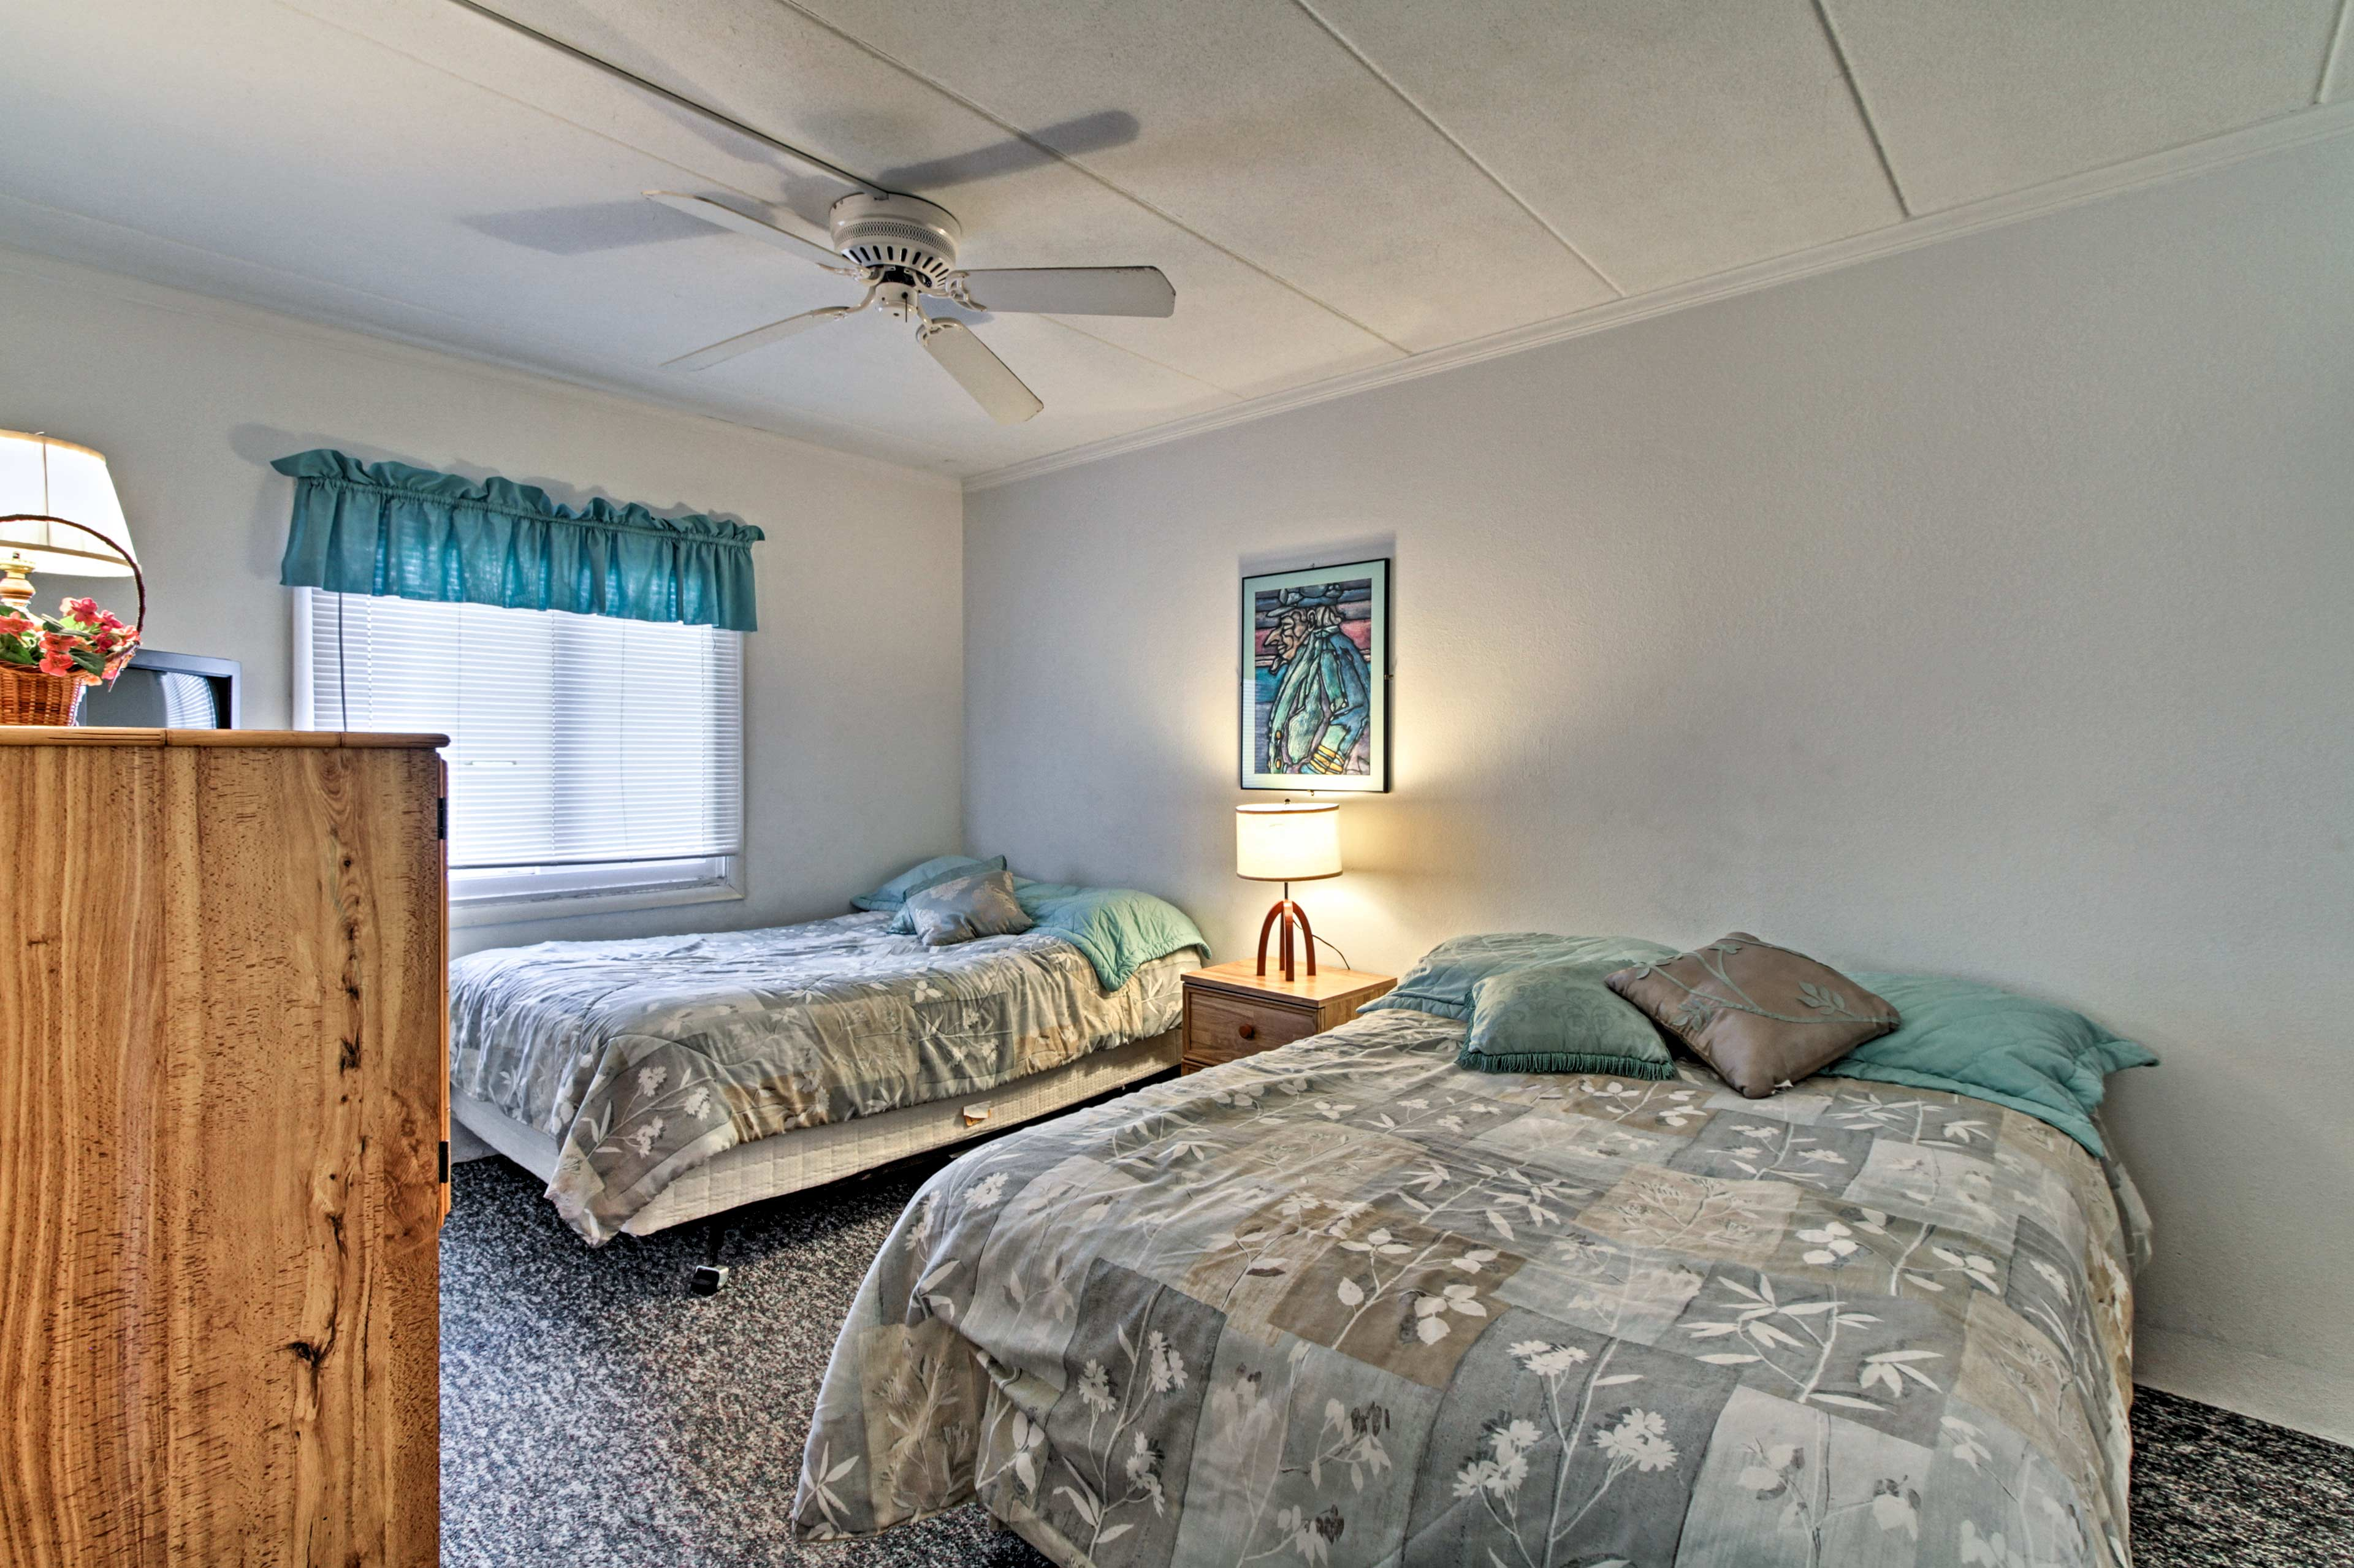 Four guests can sleep in the second bedroom.